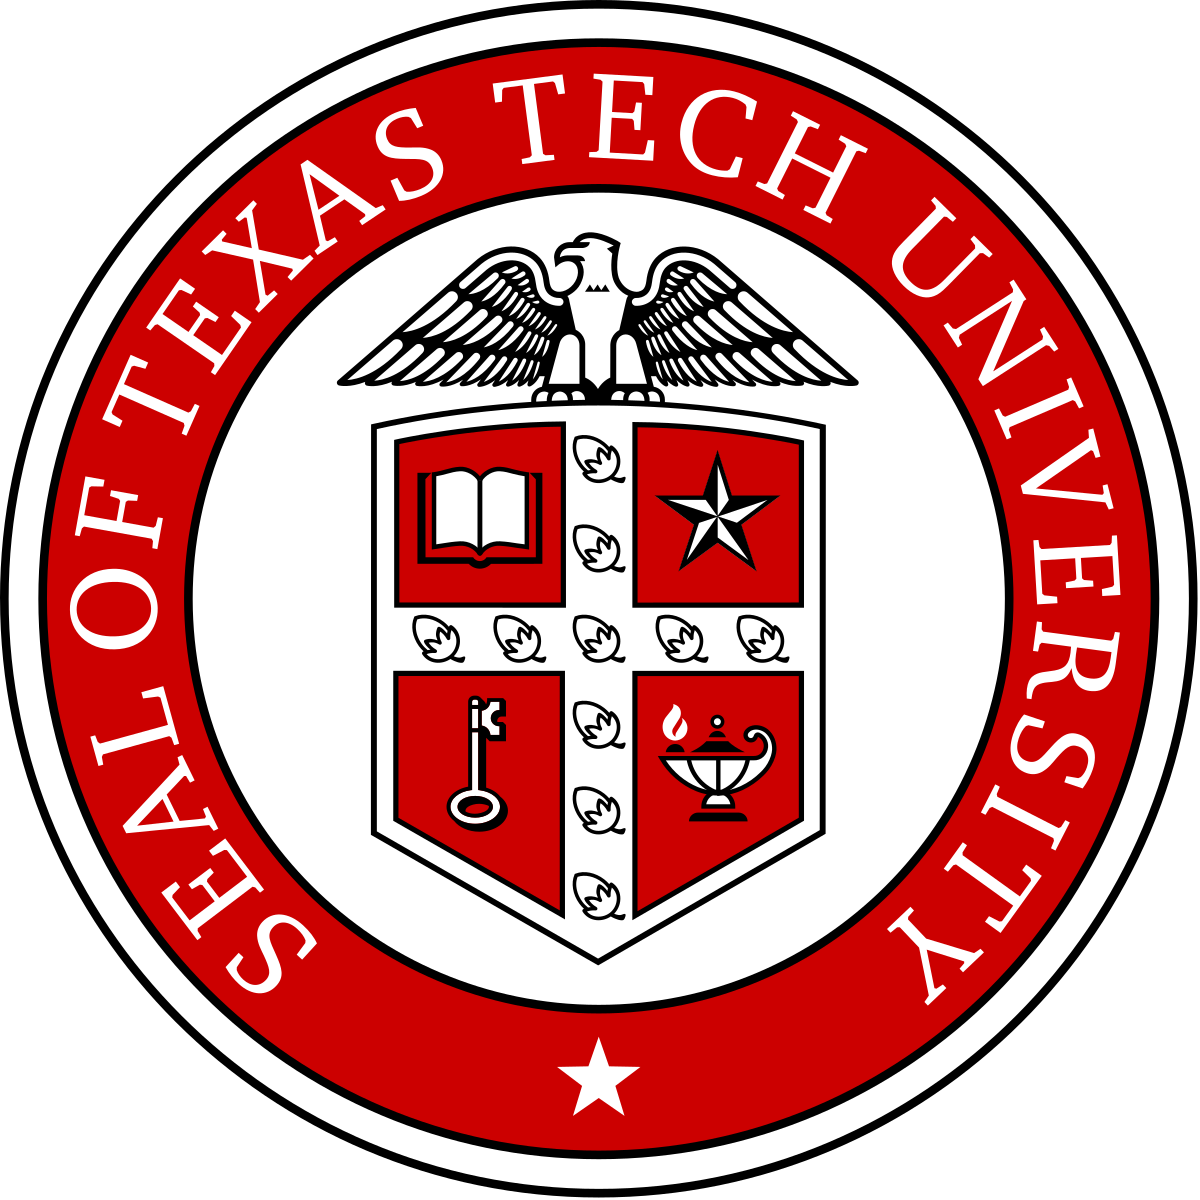 Longhorn clipart texas university. Tech wikipedia